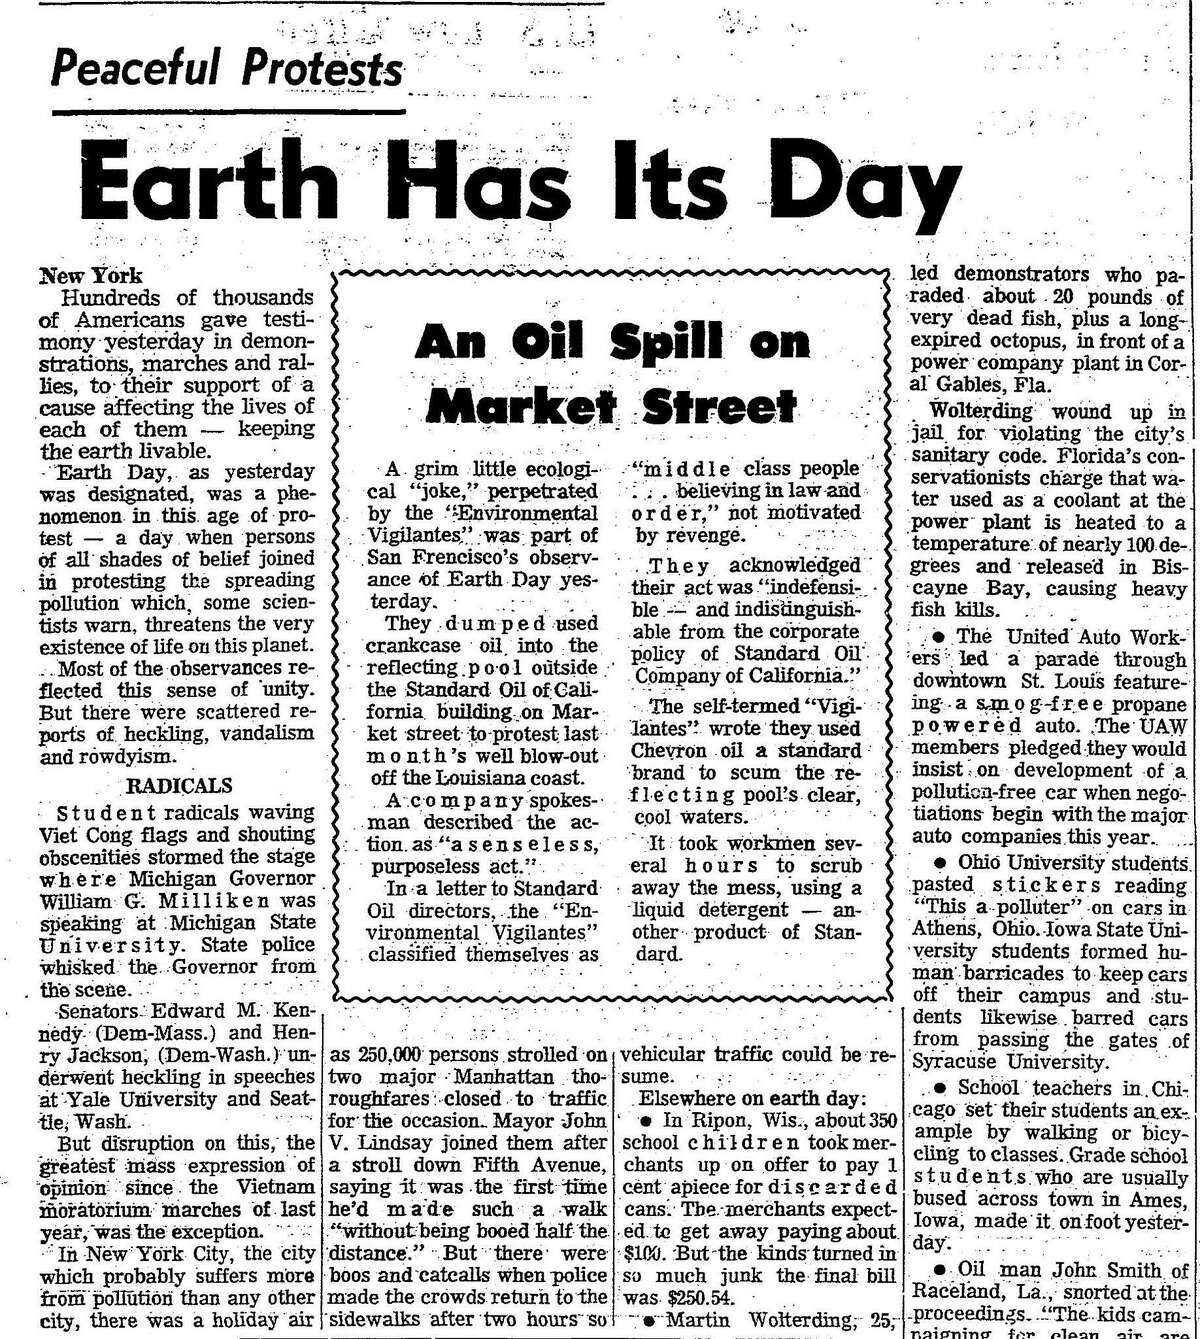 Chronicle coverage of the first Earth Day